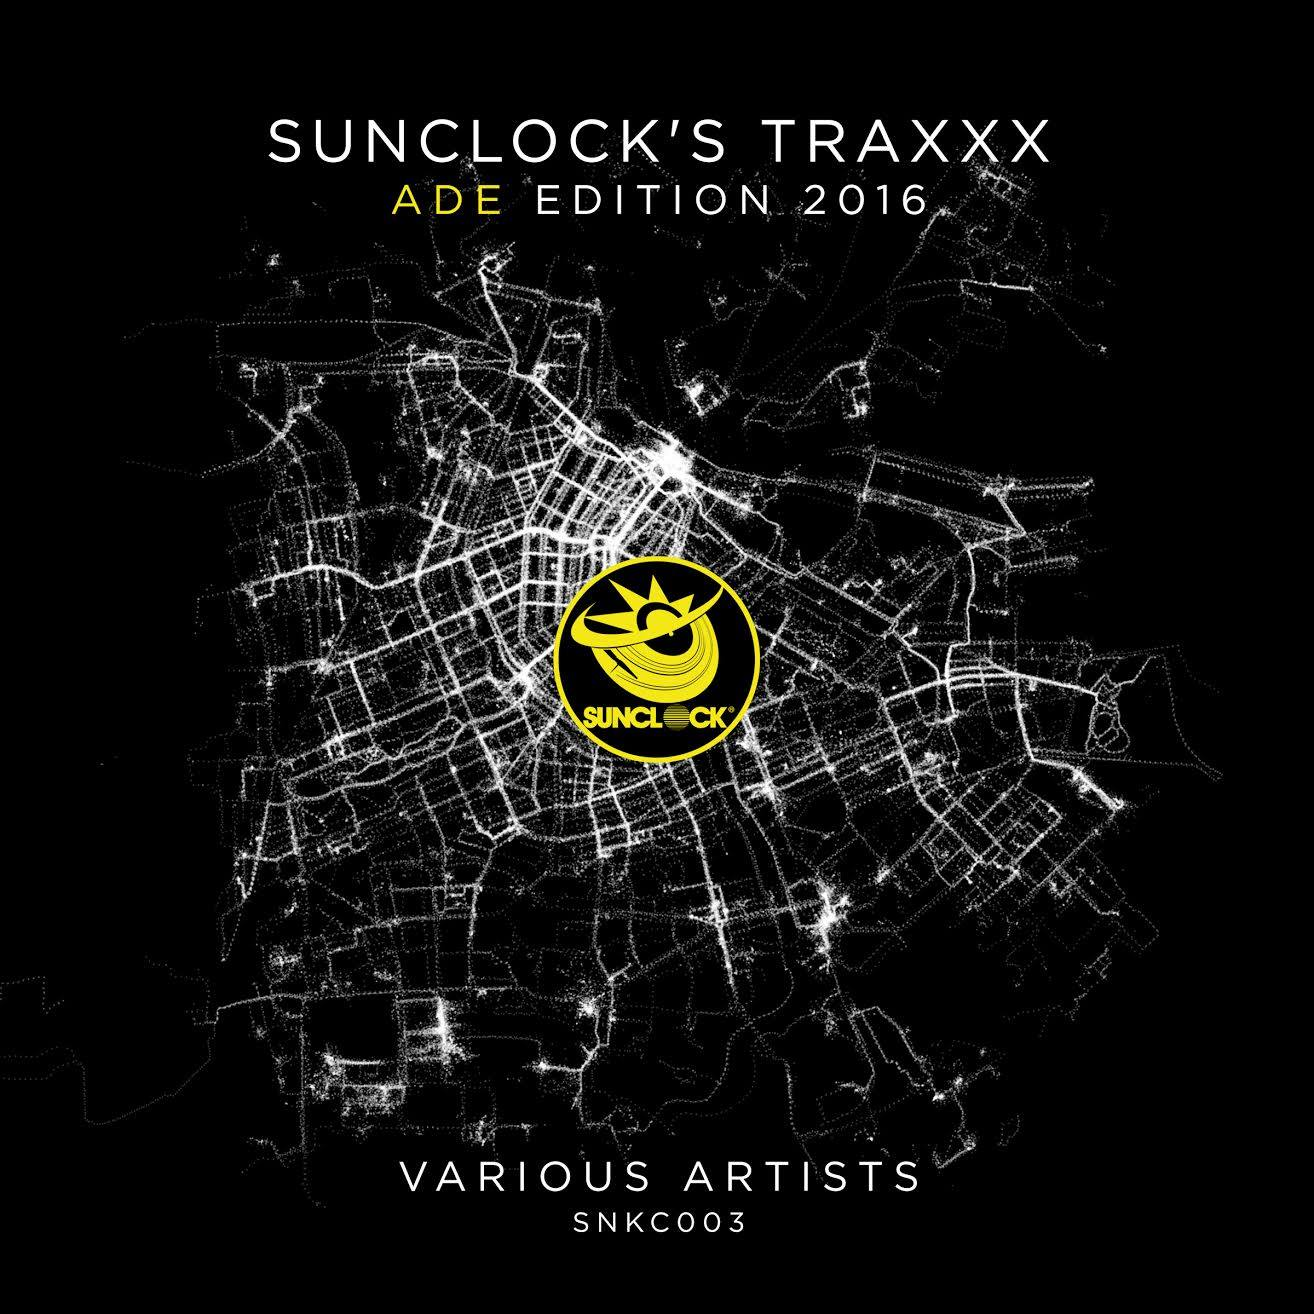 Various Artists - Sunclock's Traxxx ADE Edition 2016 Cover